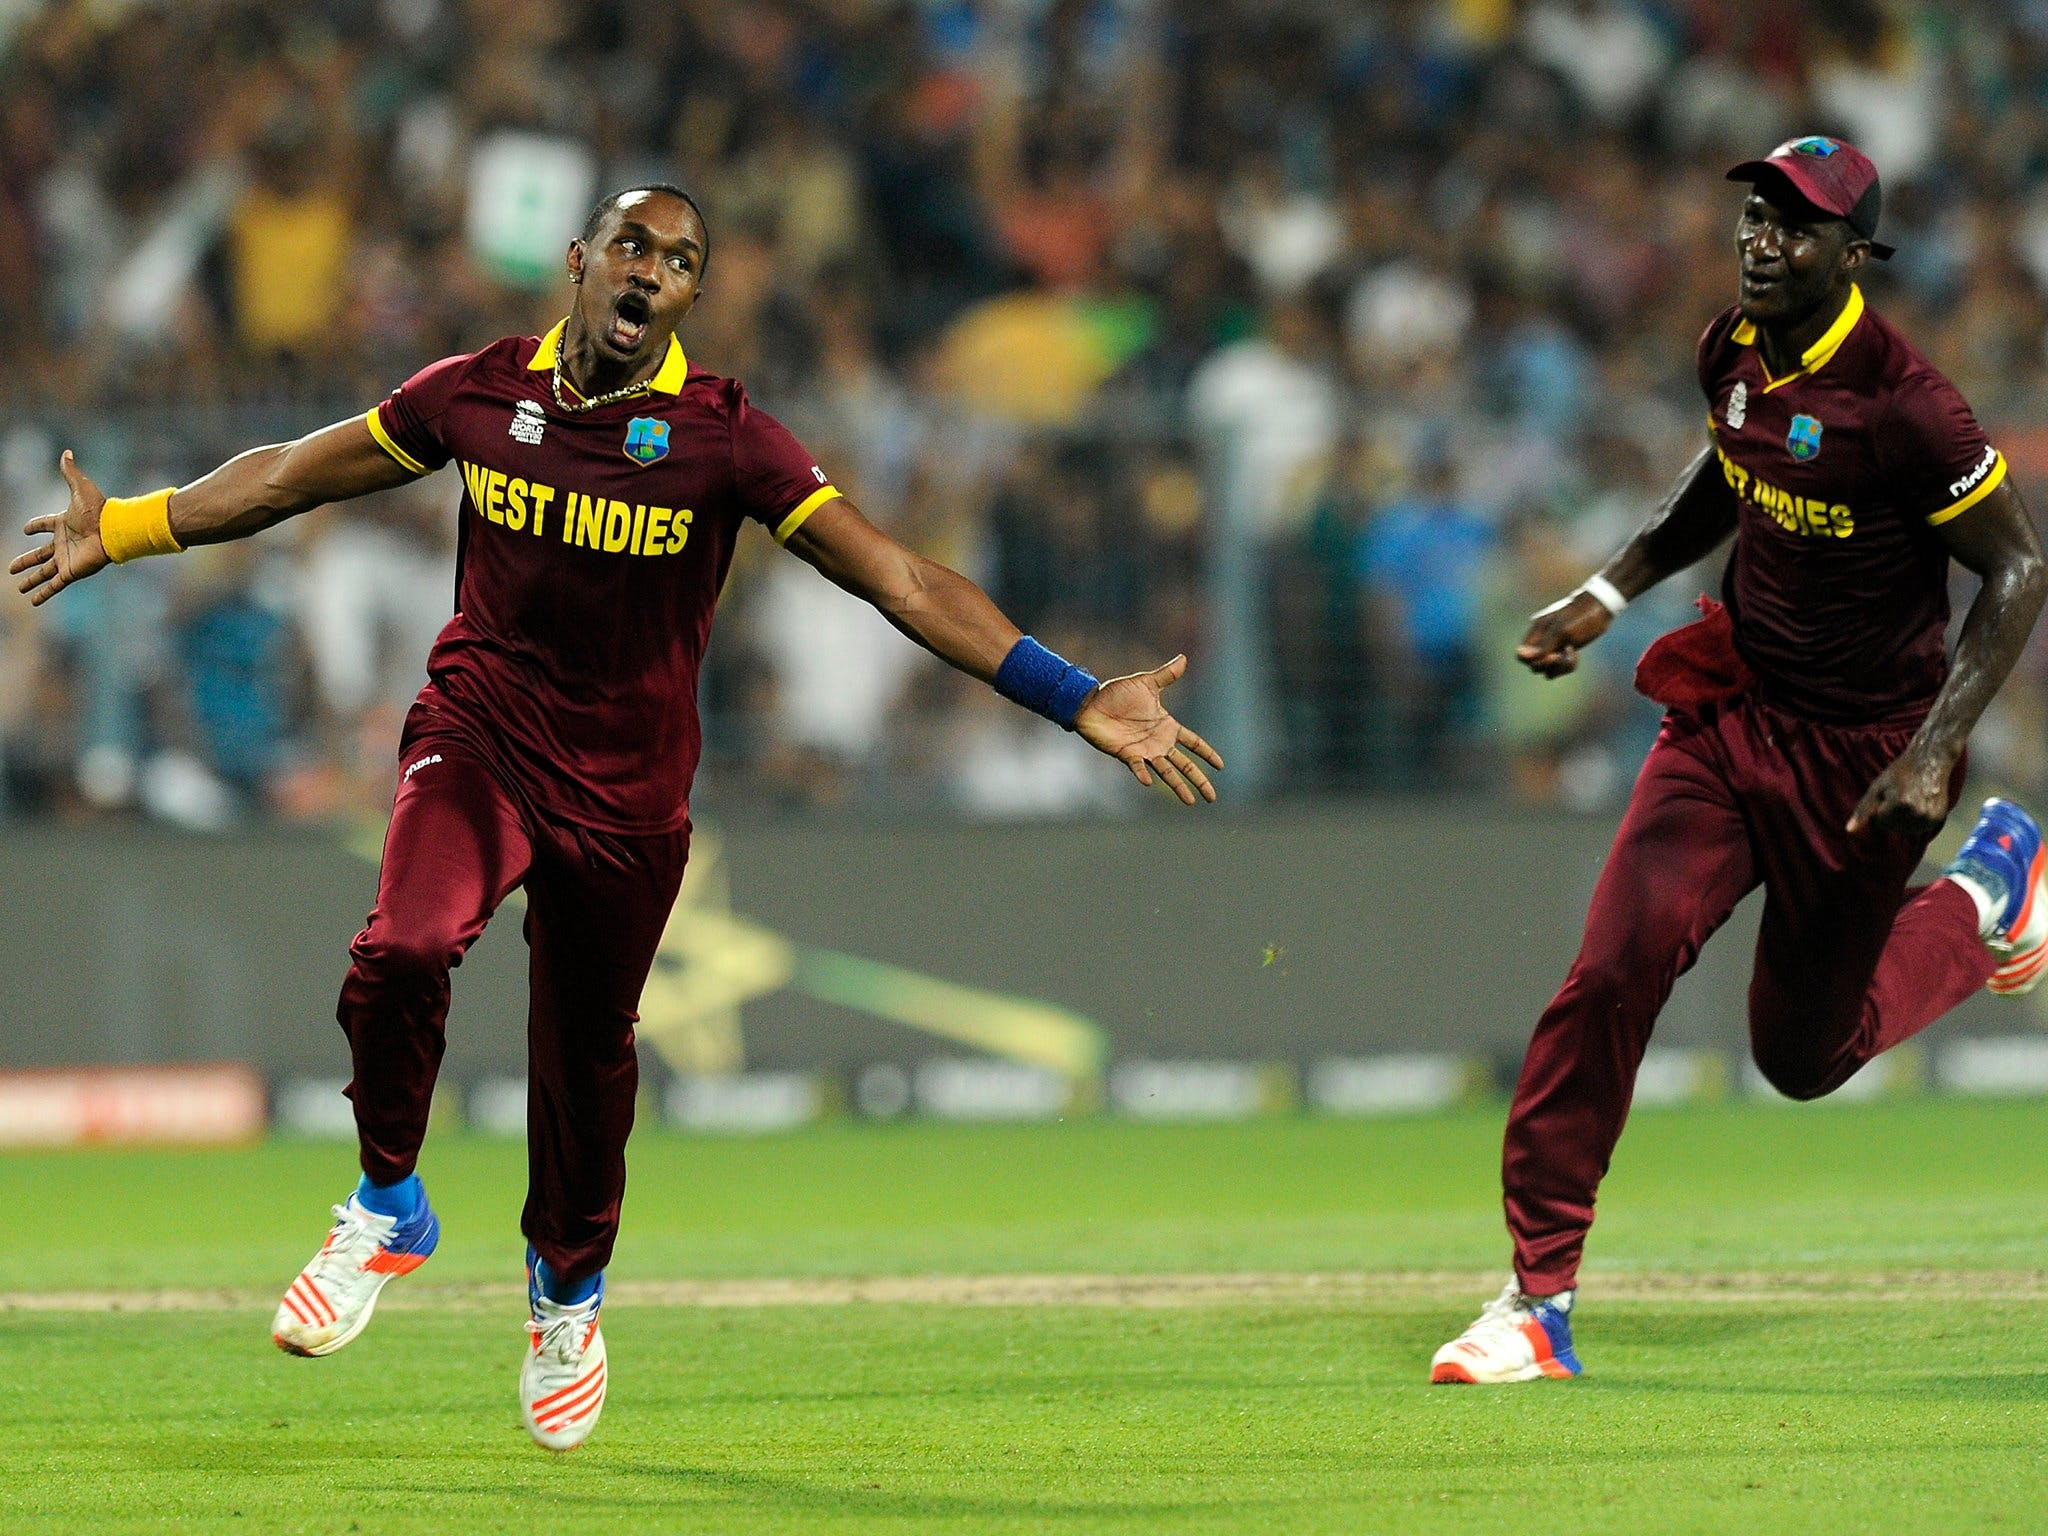 ICC Men's T20 World Cup - West Indies v Qualifier B2 - New South Wales Tourism